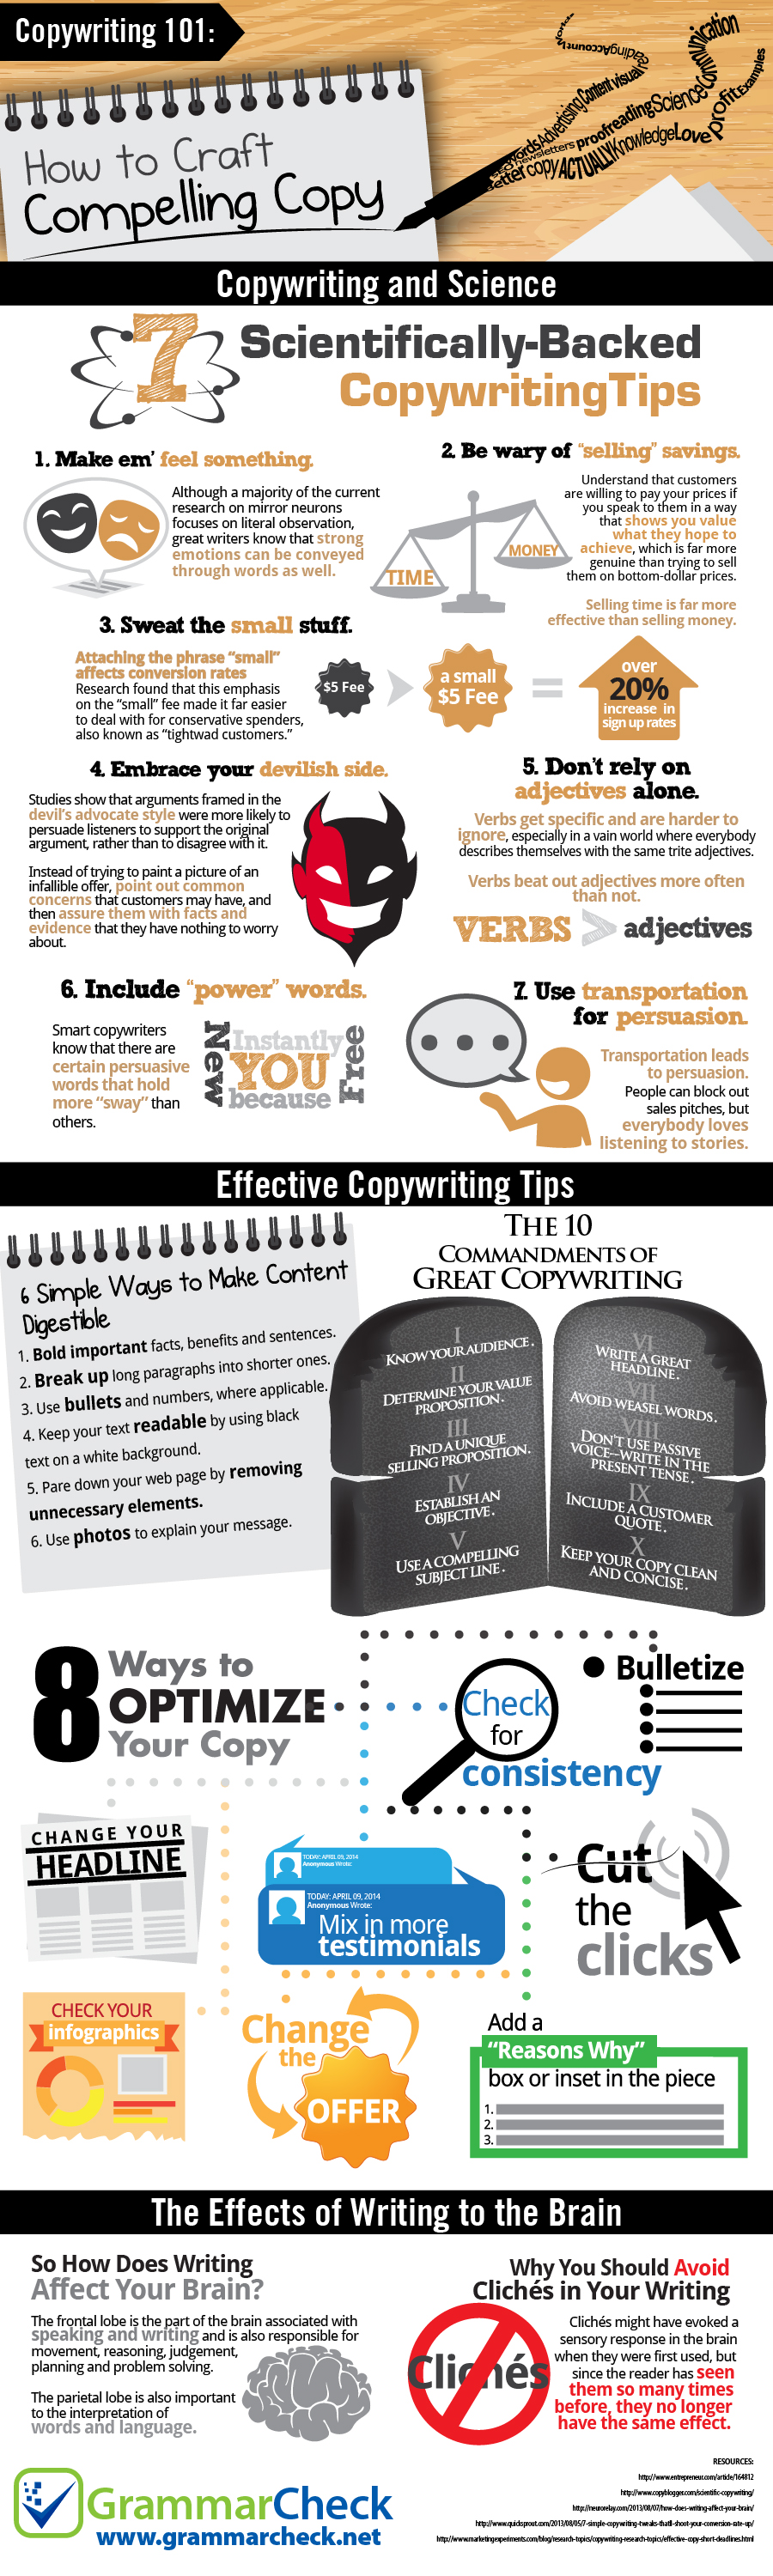 Copywriting 101: How to Craft Compelling Copy (Infographic)